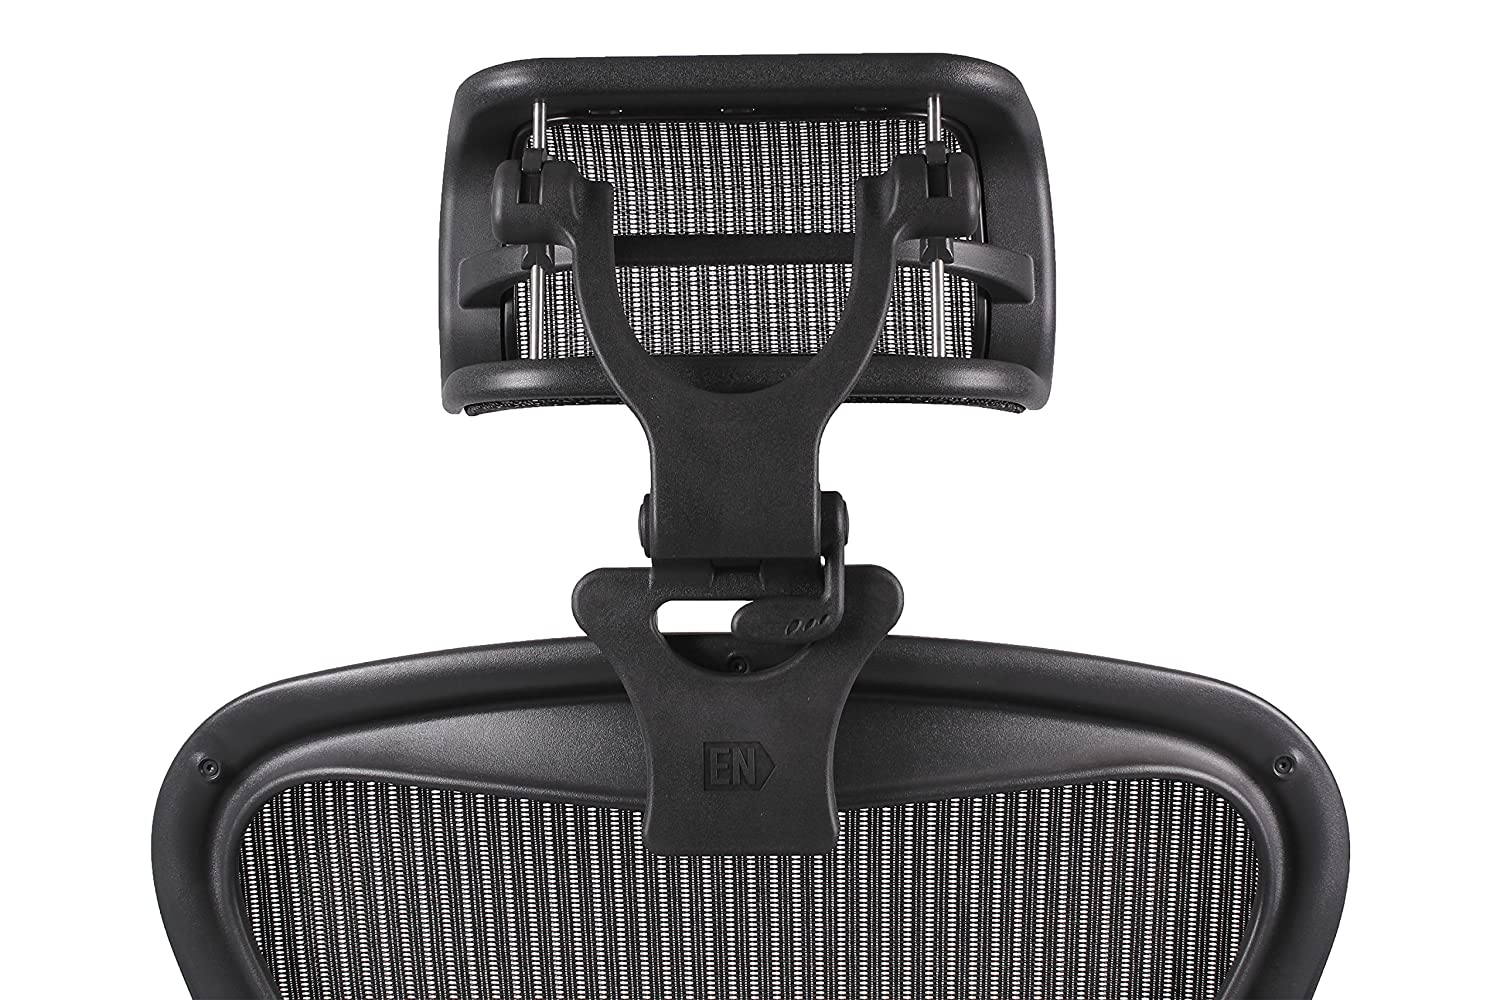 Amazon.com: Headrest For Herman Miller Aeron Chair Classic Edition   H4  Carbon By Engineered Now (COLORS MATCH CLASSIC AERON CHAIRS 2016 AND  EARLIER ...